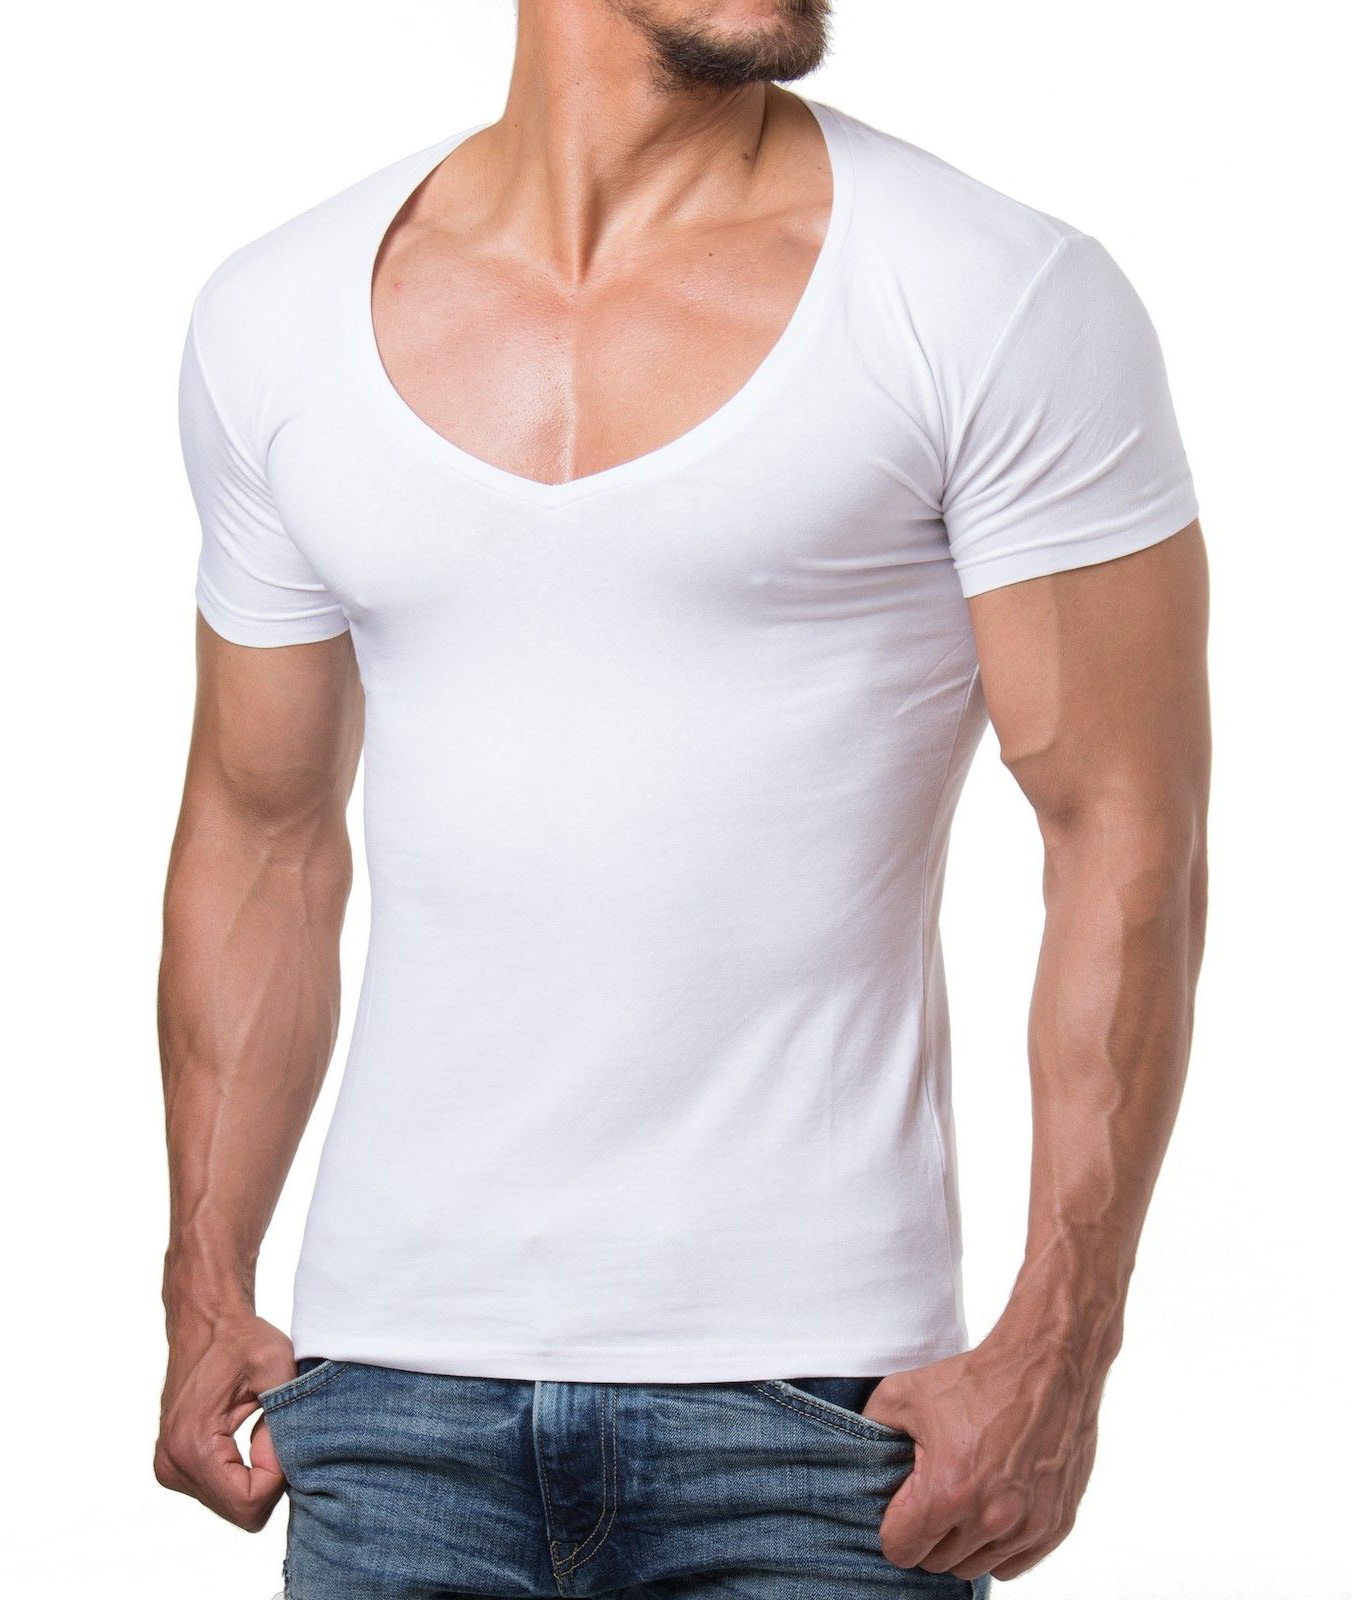 b6837d55e012 t shirt blanc col v homme - www.goldpoint.be